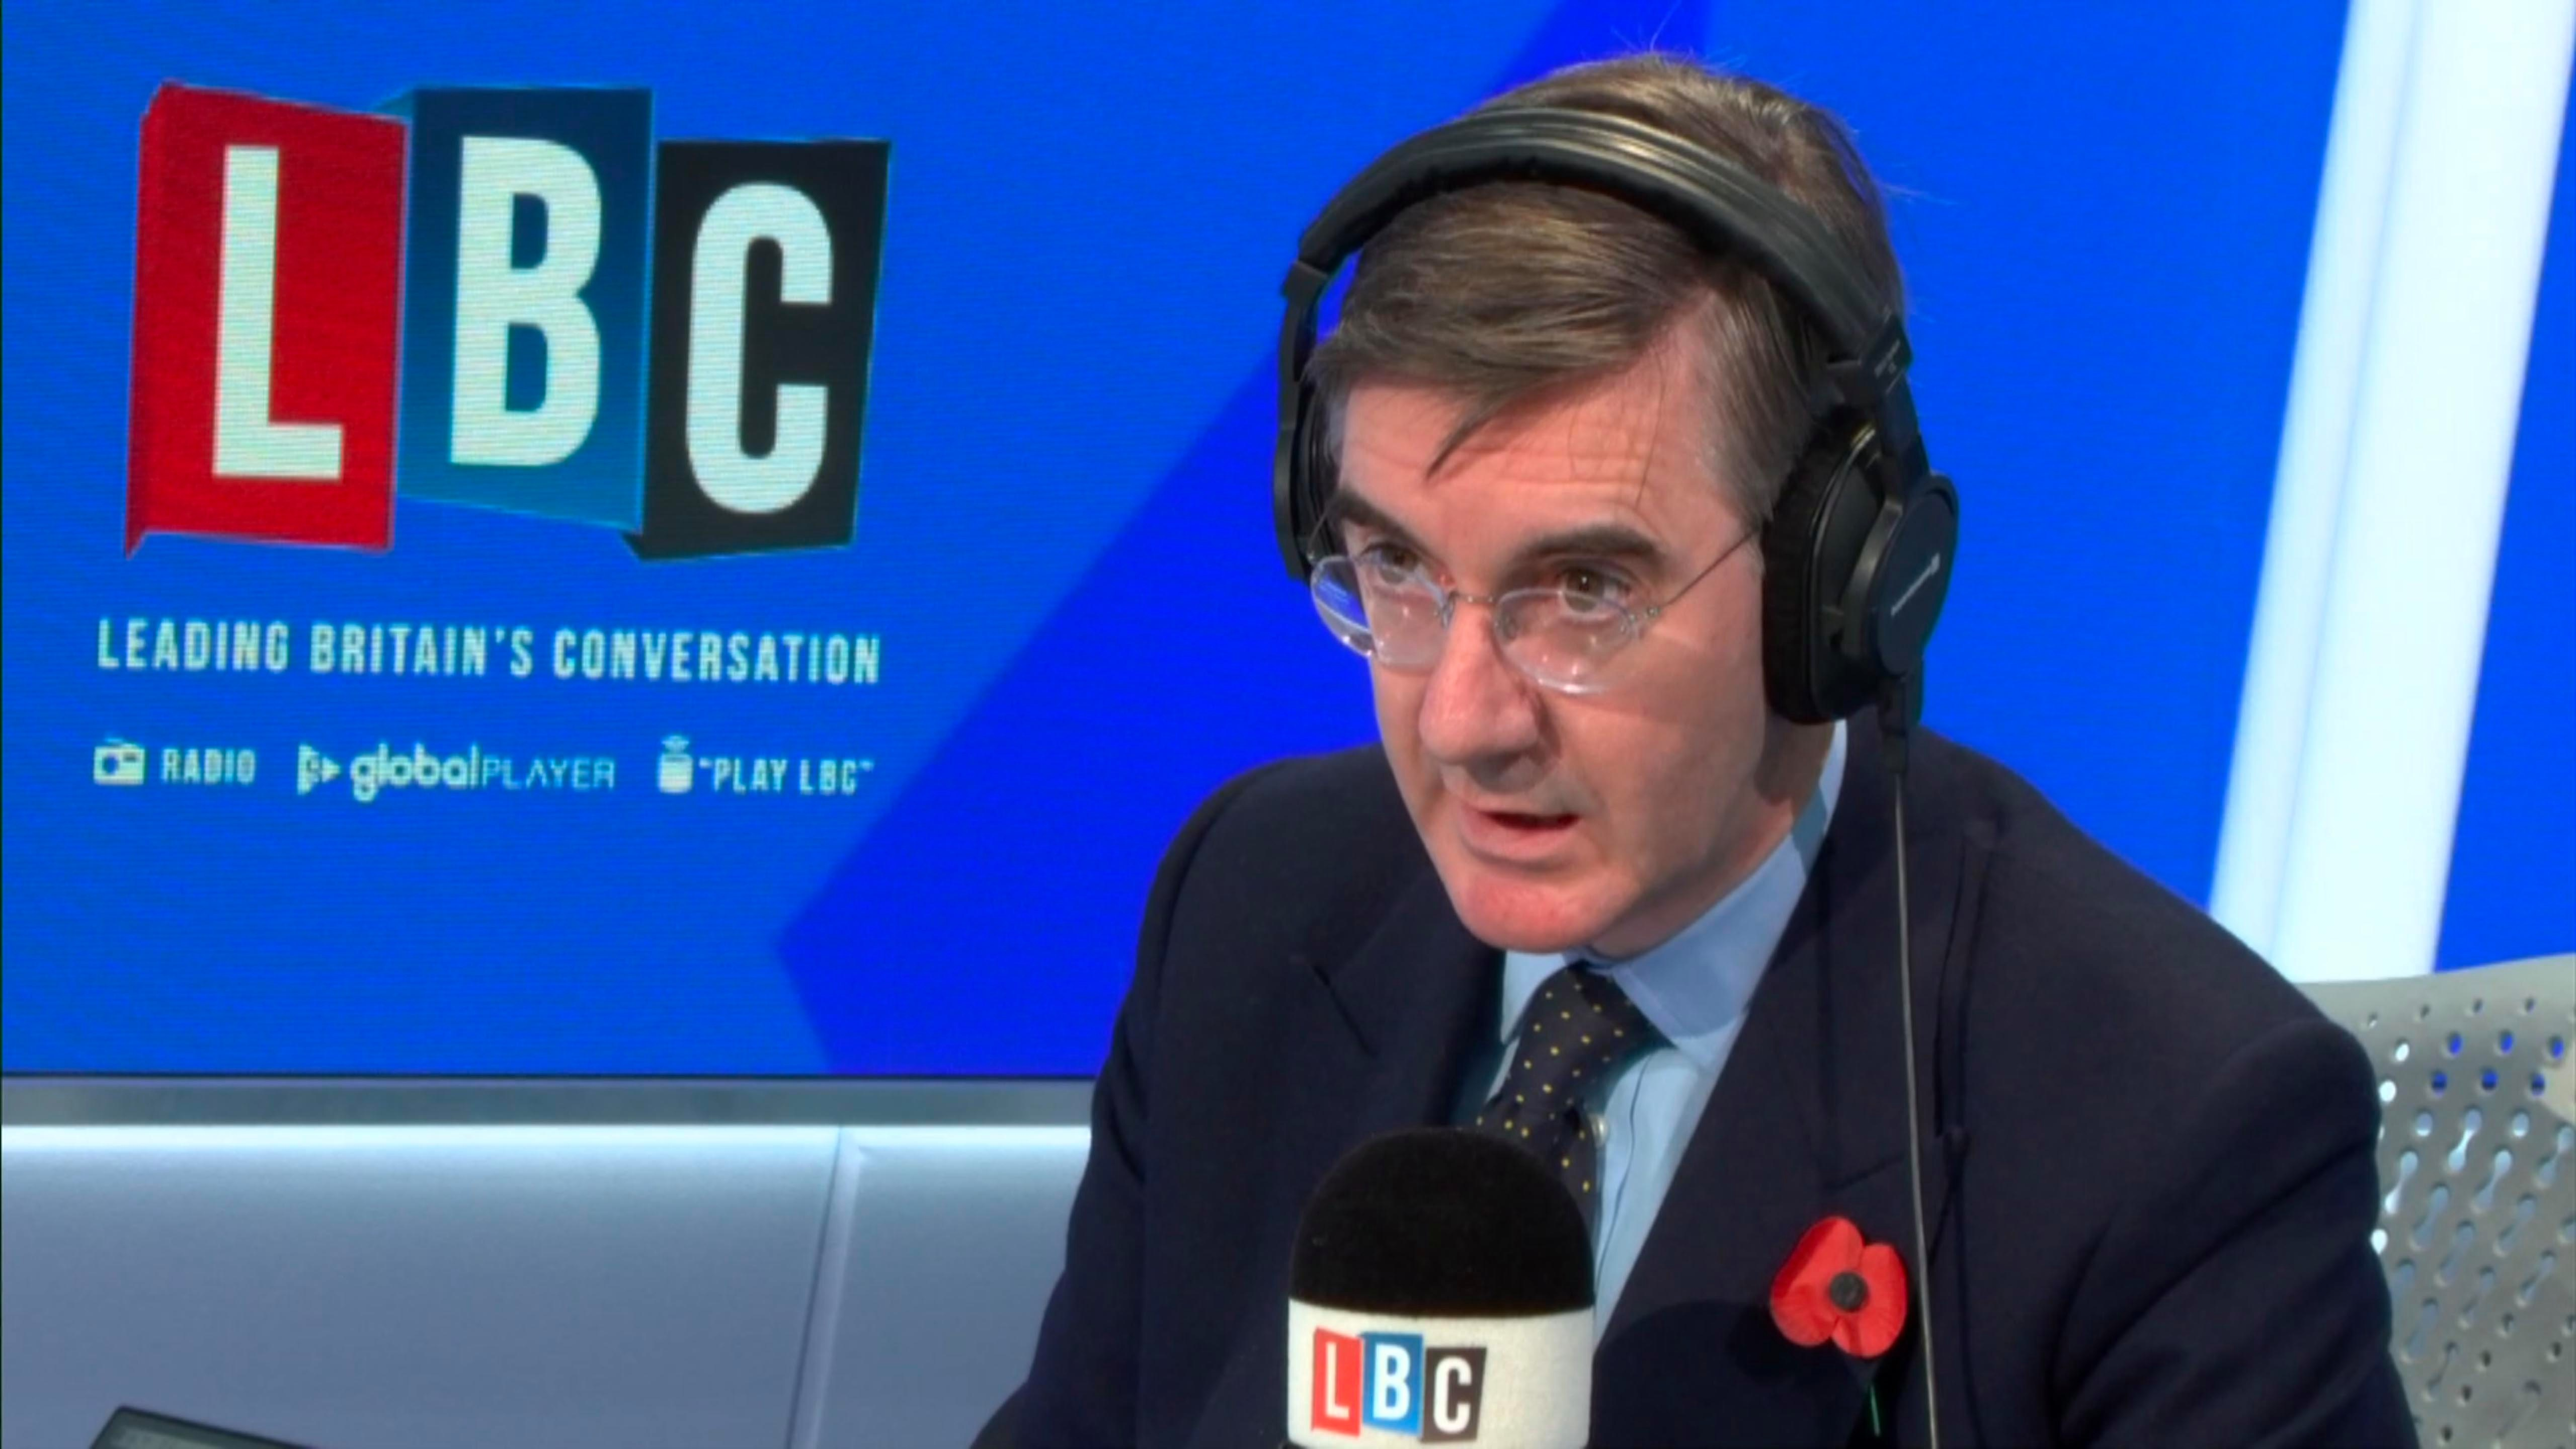 Jacob Rees-Mogg's Grenfell comments show us what the Tories really think about people of colour   gal-dem